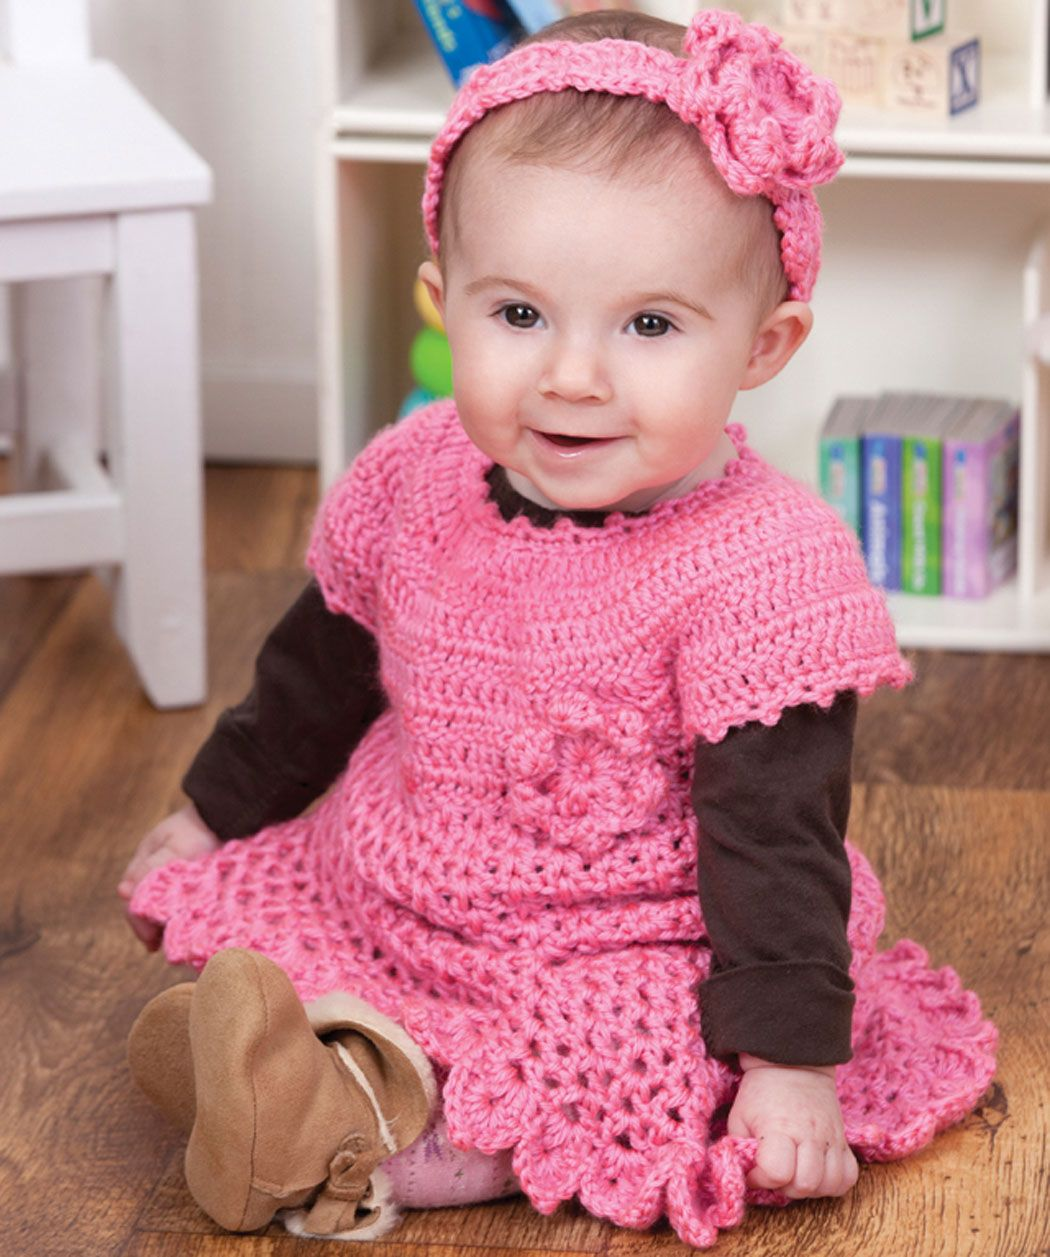 Little Sweetie Dress Free Crochet Pattern using Red Heart Soft Baby ...